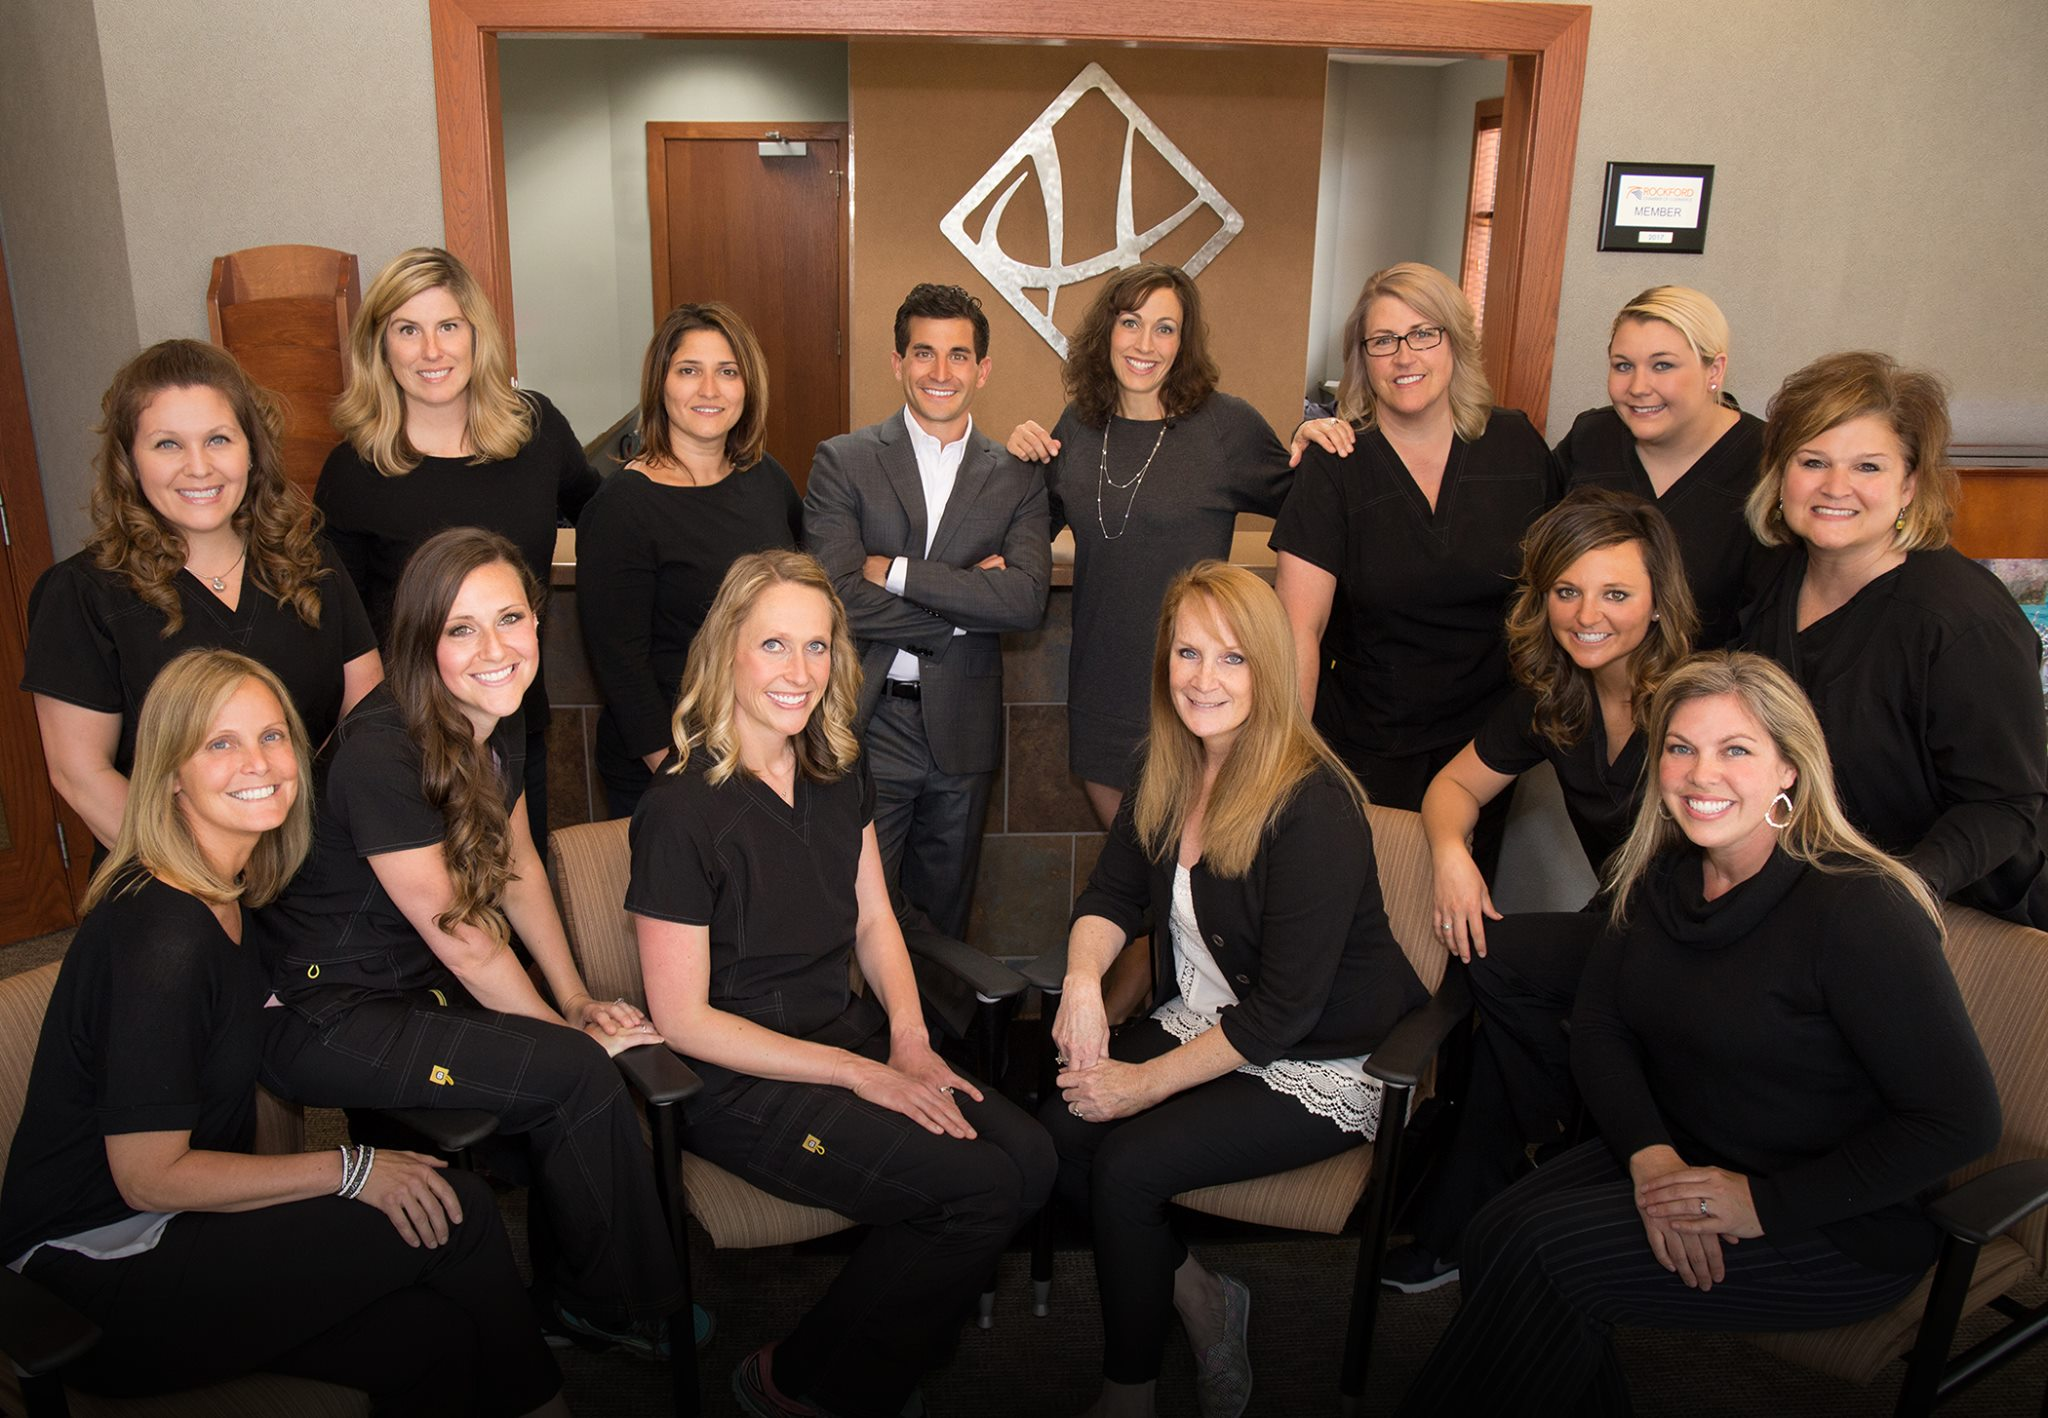 Heather J. Cadorette DDS